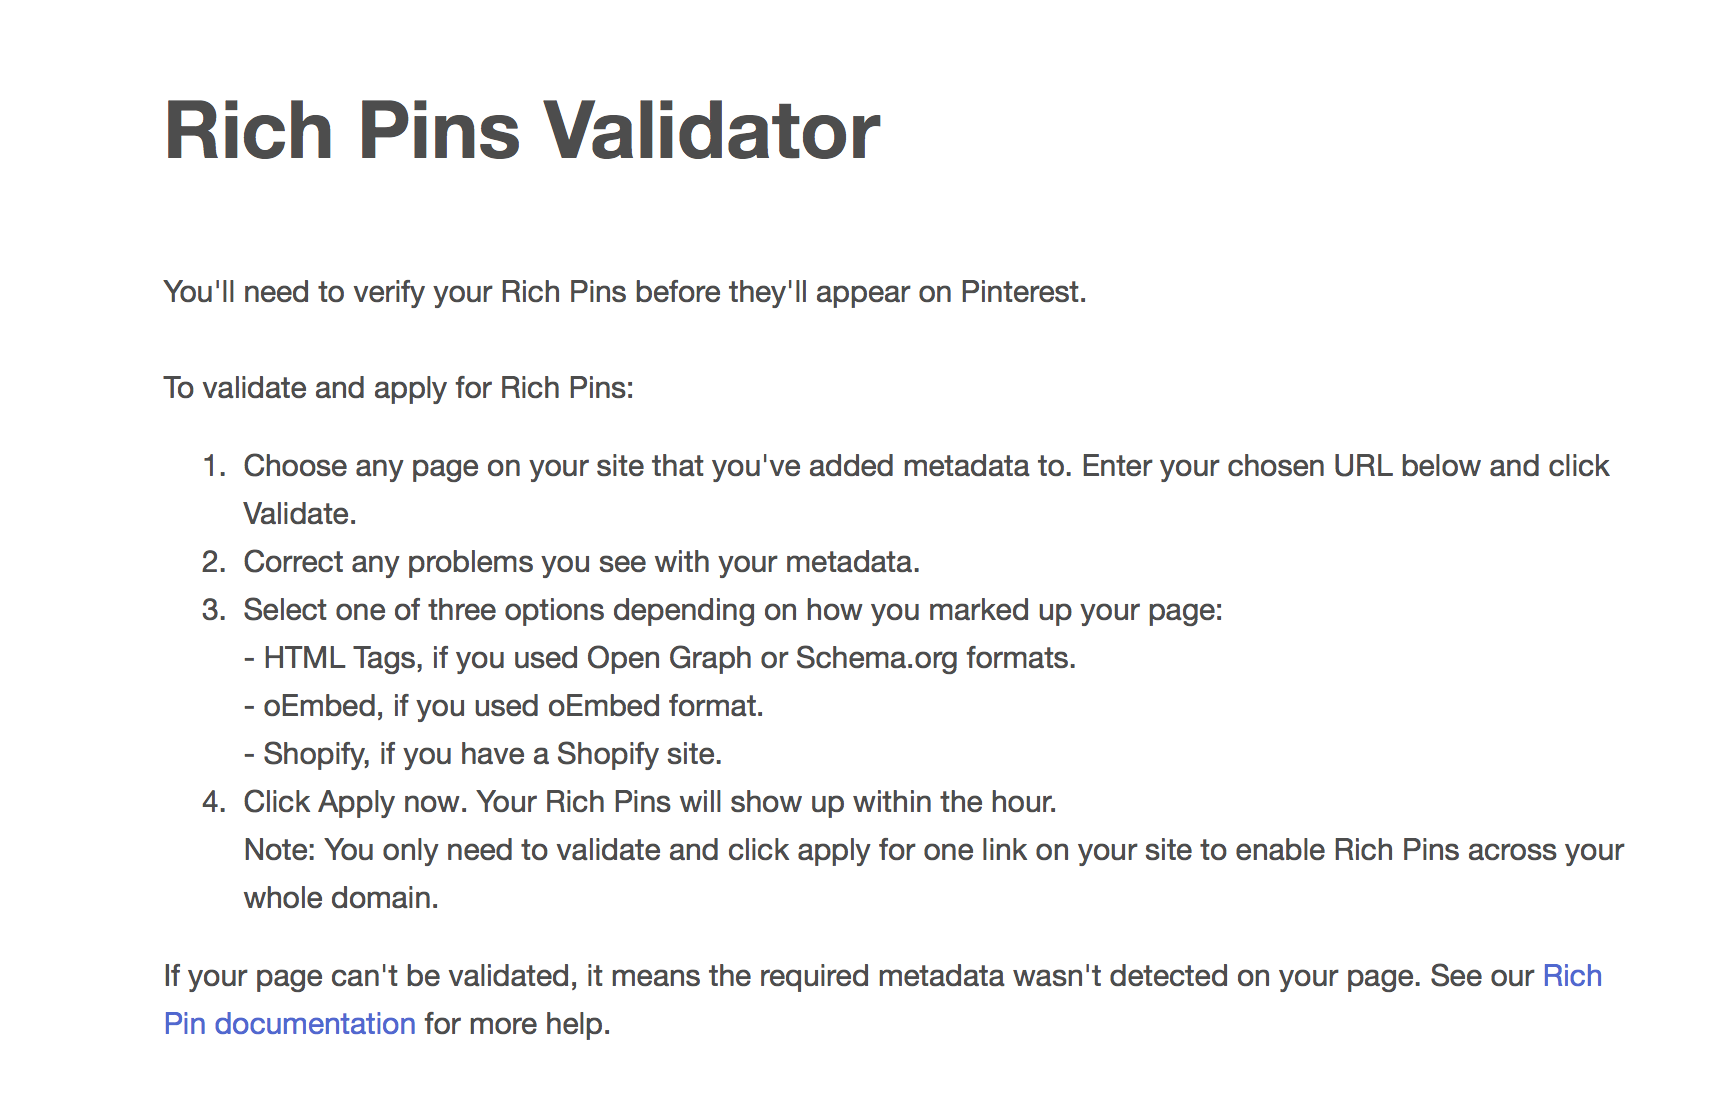 Use the Rich Pins Validator tool